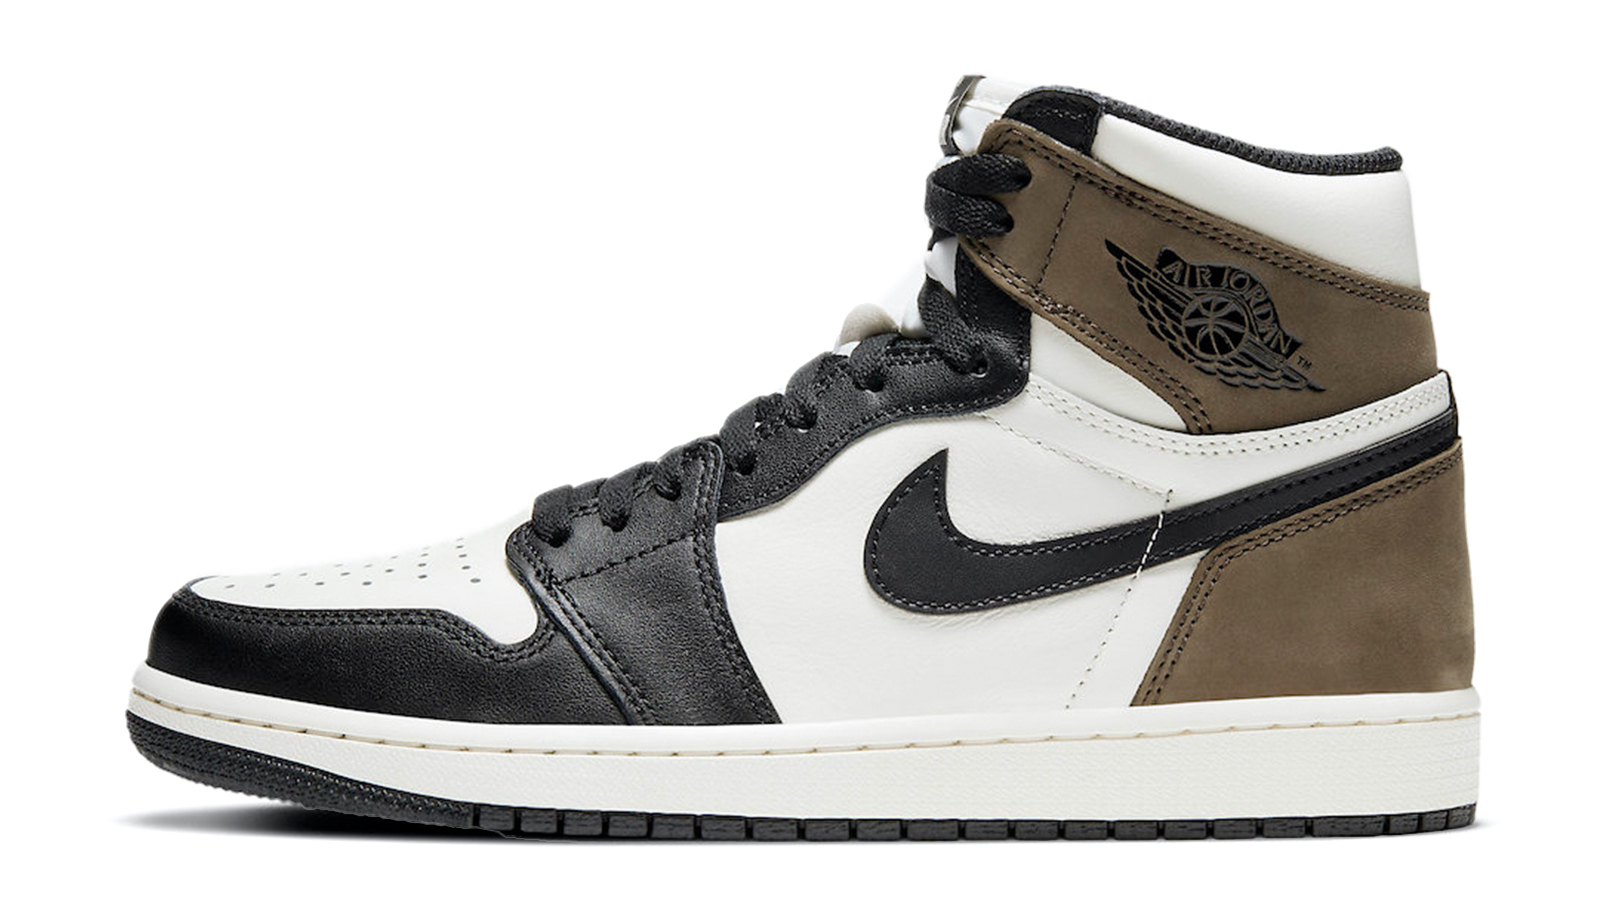 Air Jordan 1 Hi Dark Mocha 555088-105